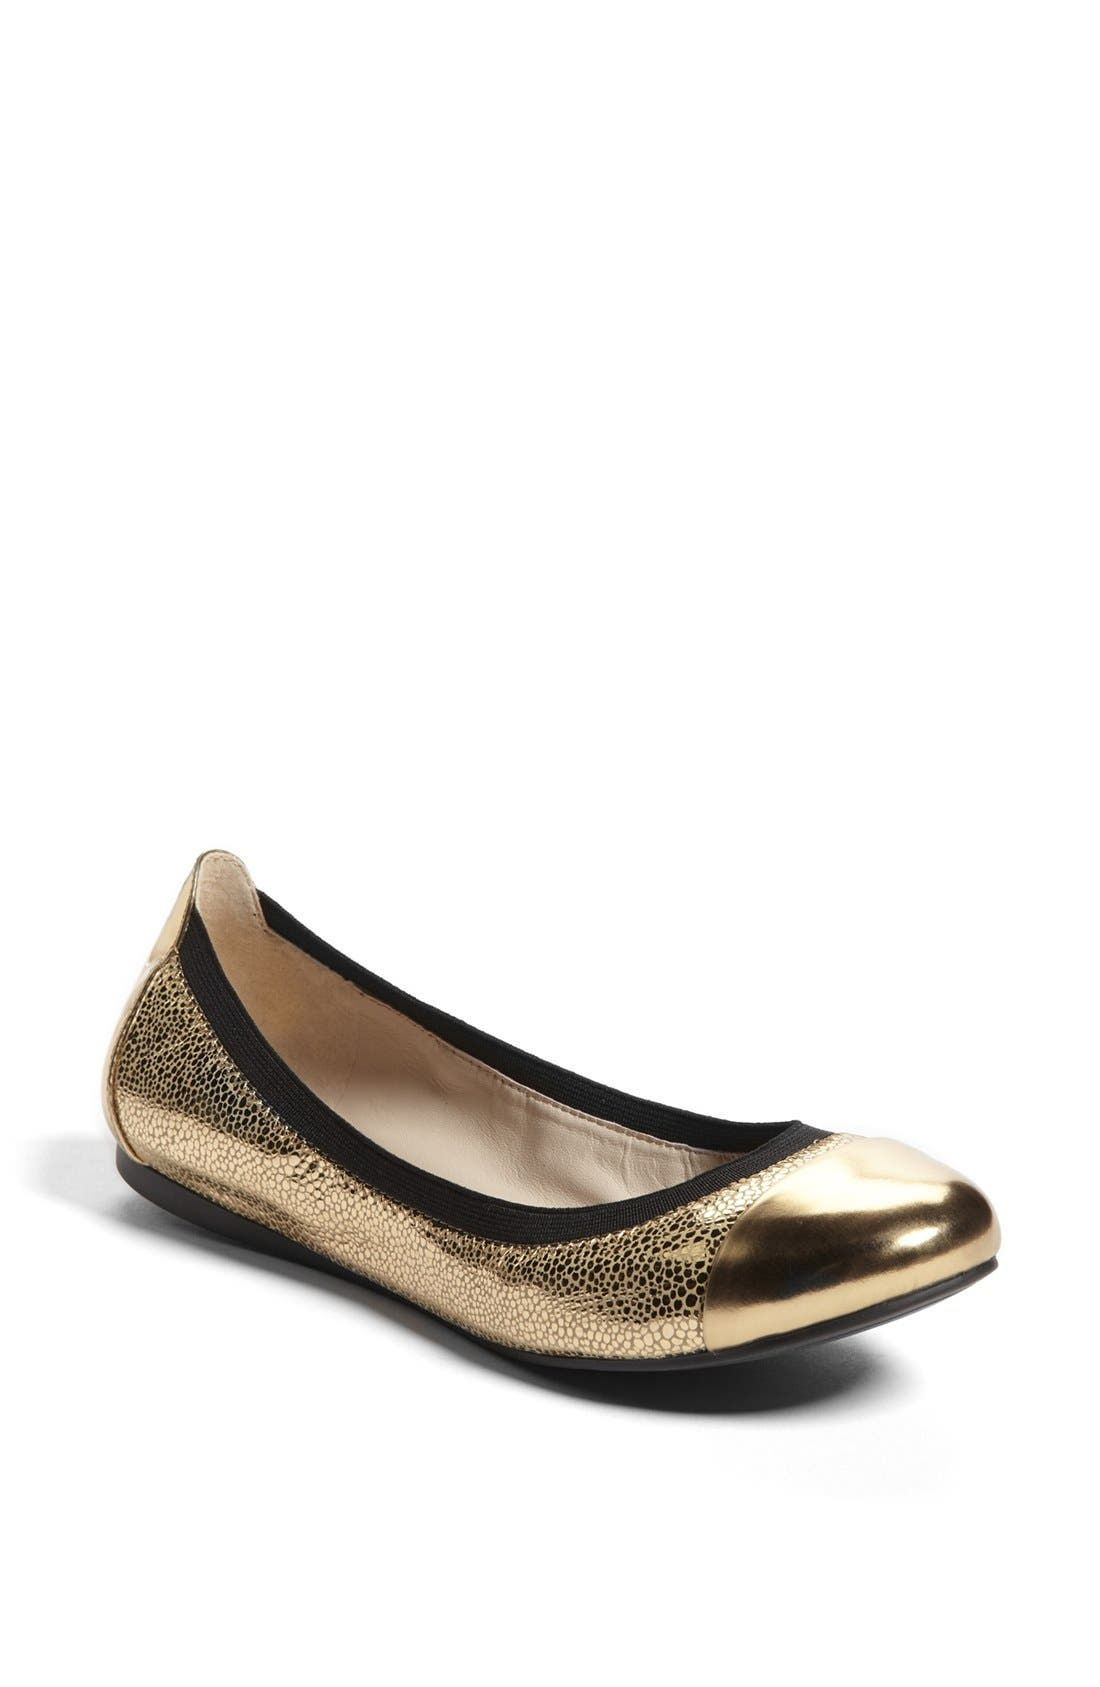 Alternate Image 1 Selected - Vince Camuto 'Elisee' Leather Ballet Flat